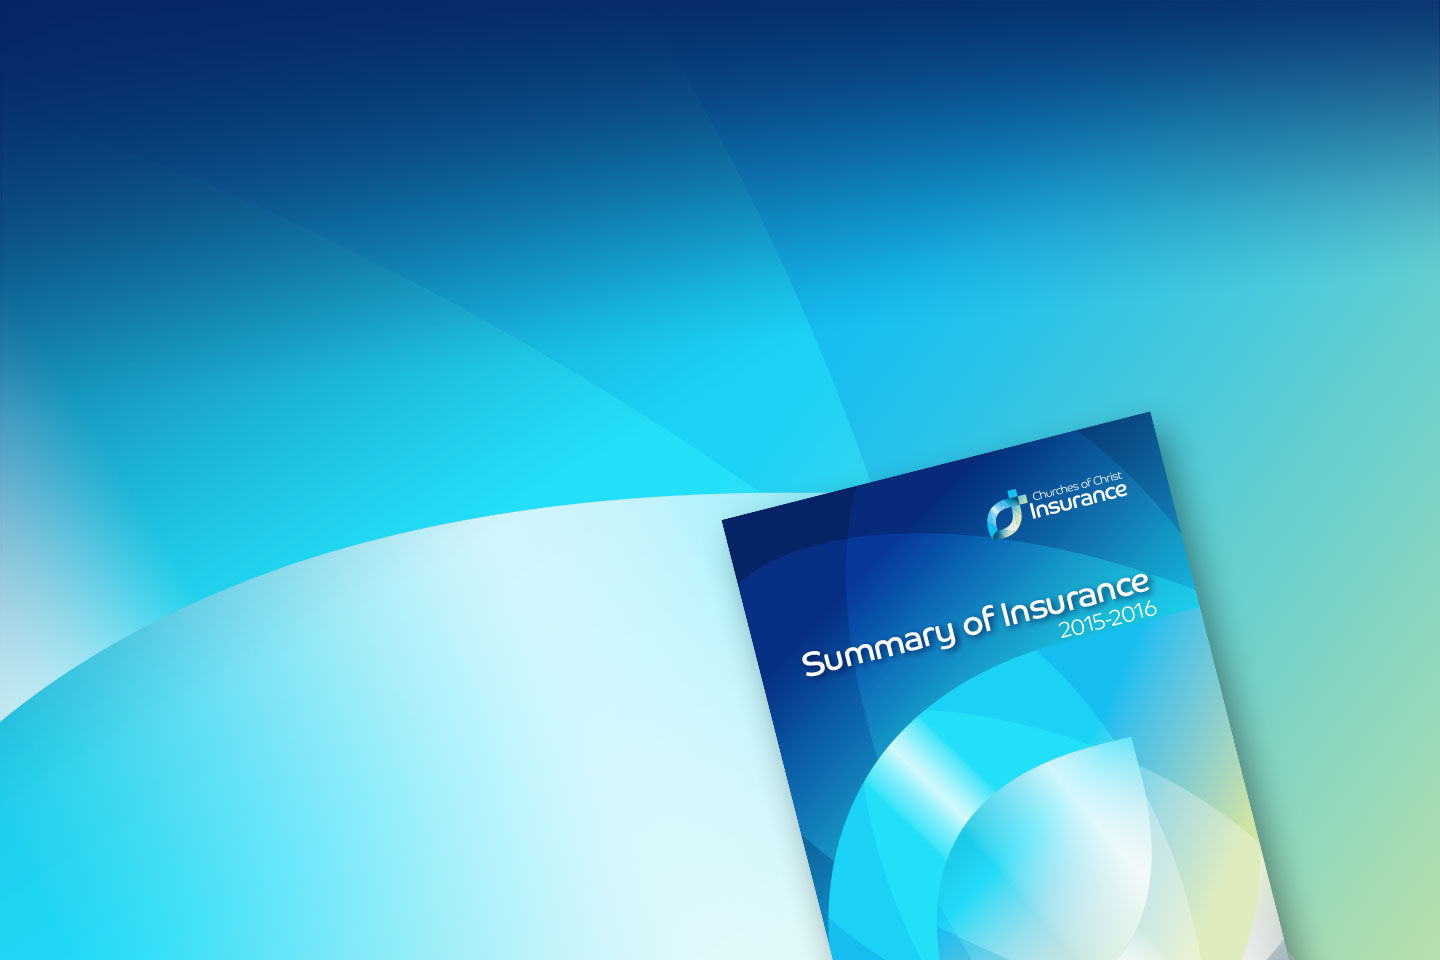 Summary of Insurance